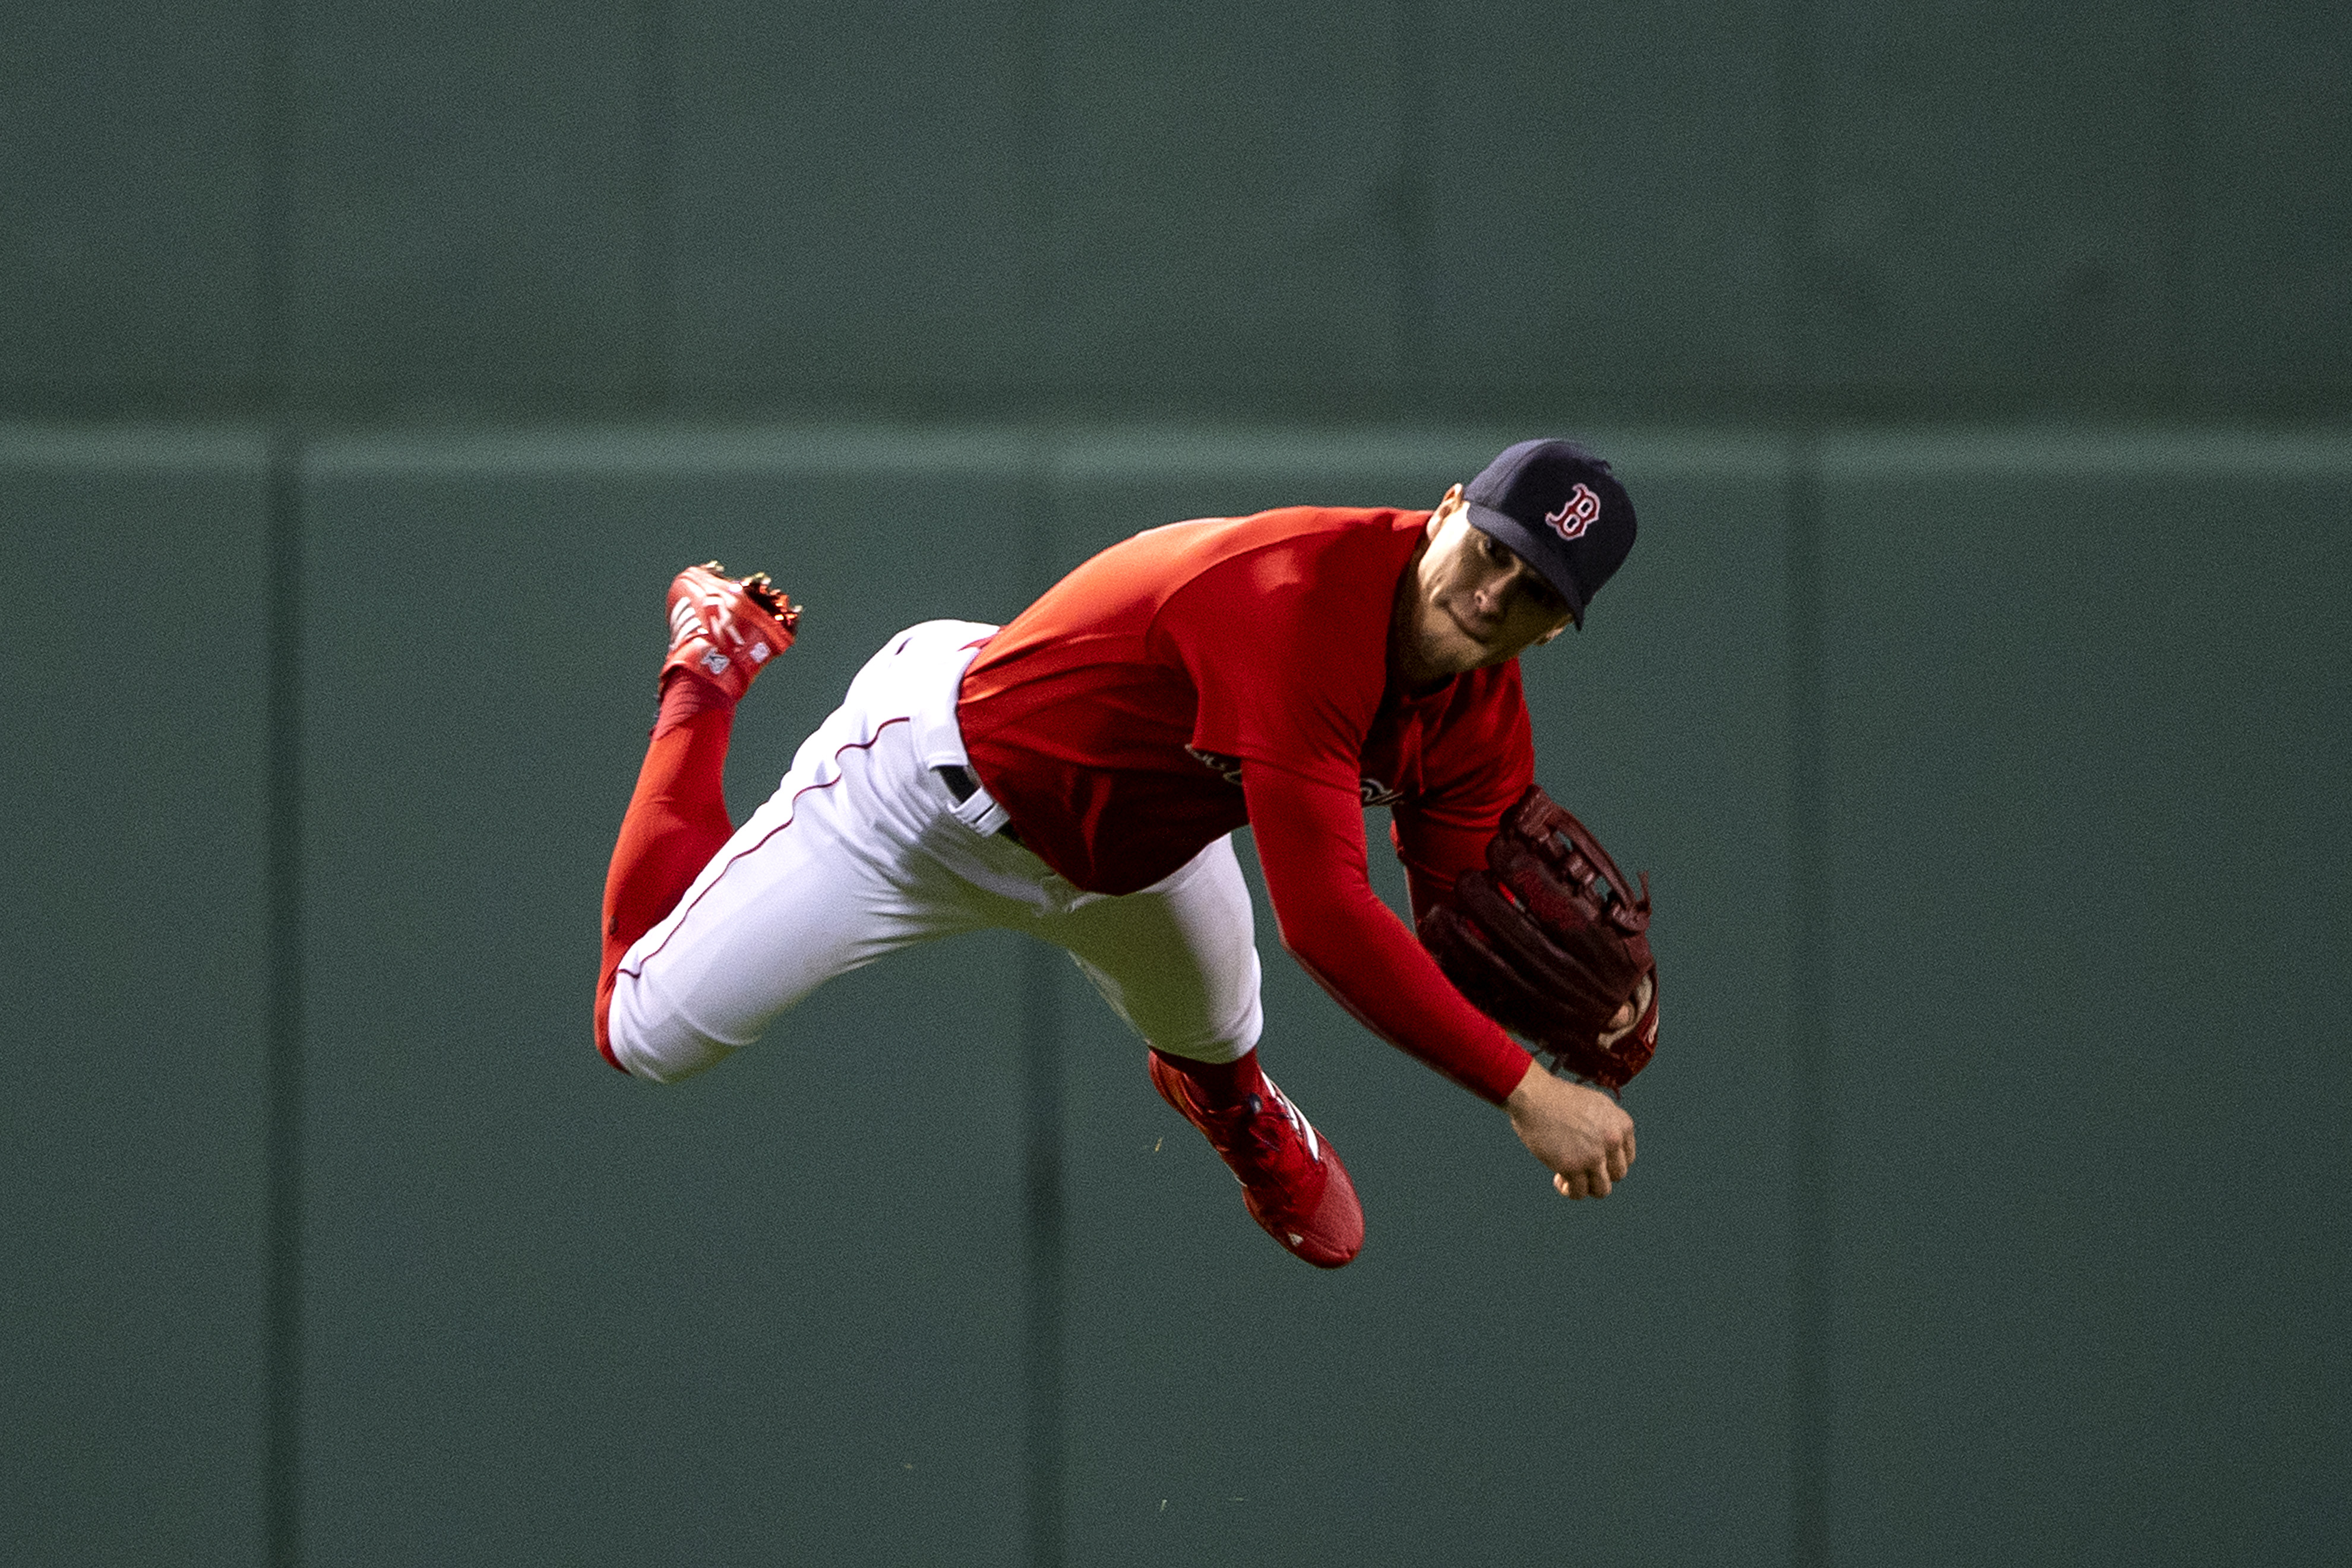 Enrique Hernandez #5 of the Boston Red Sox falls as he throws during the fourth inning of game three of the 2021 American League Championship Series against the Houston Astros at Fenway Park on October 18, 2021 in Boston, Massachusetts.